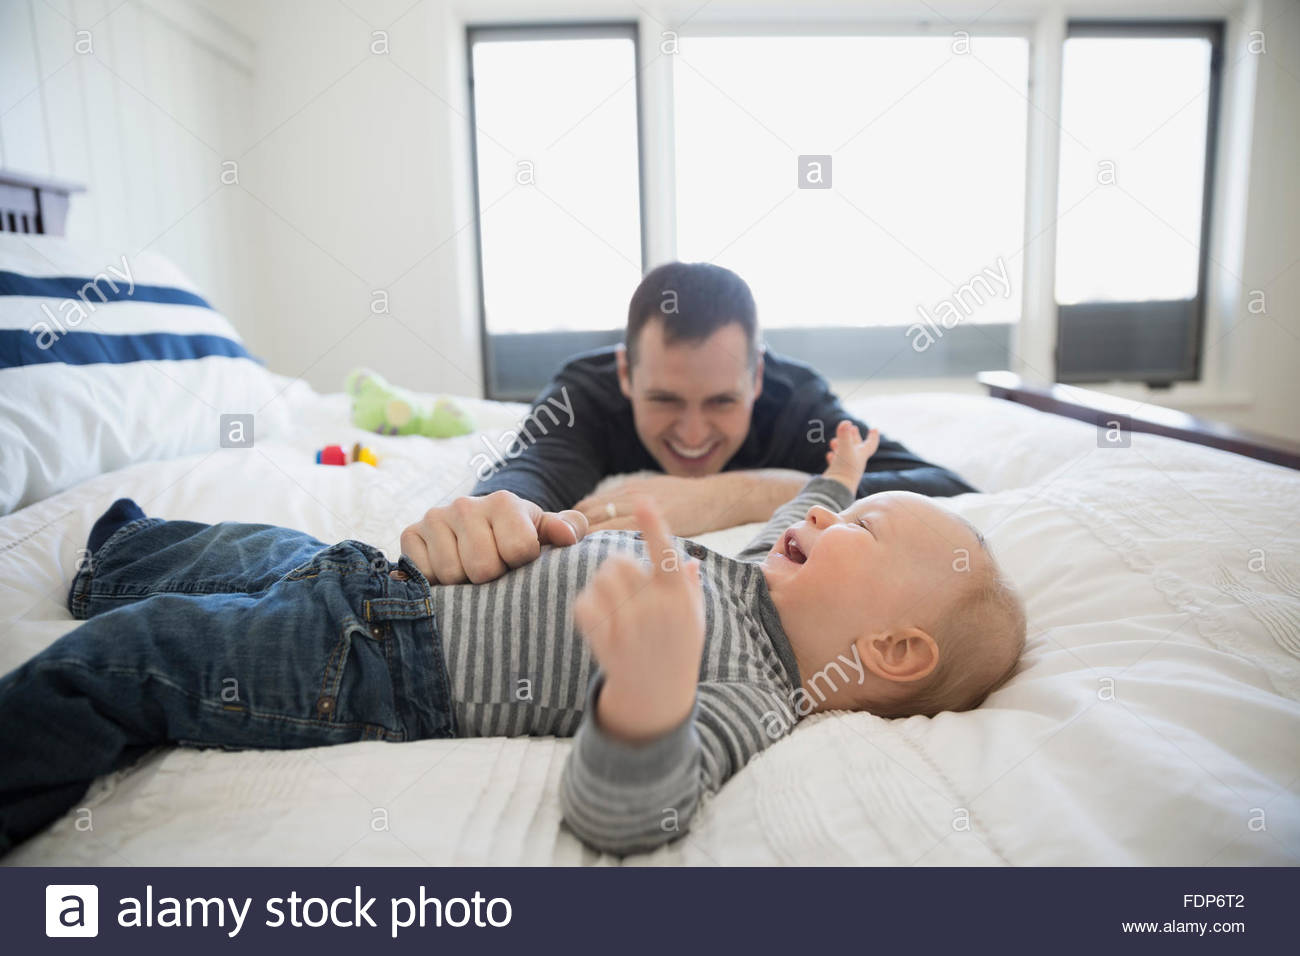 Father and baby son laughing on bed - Stock Image